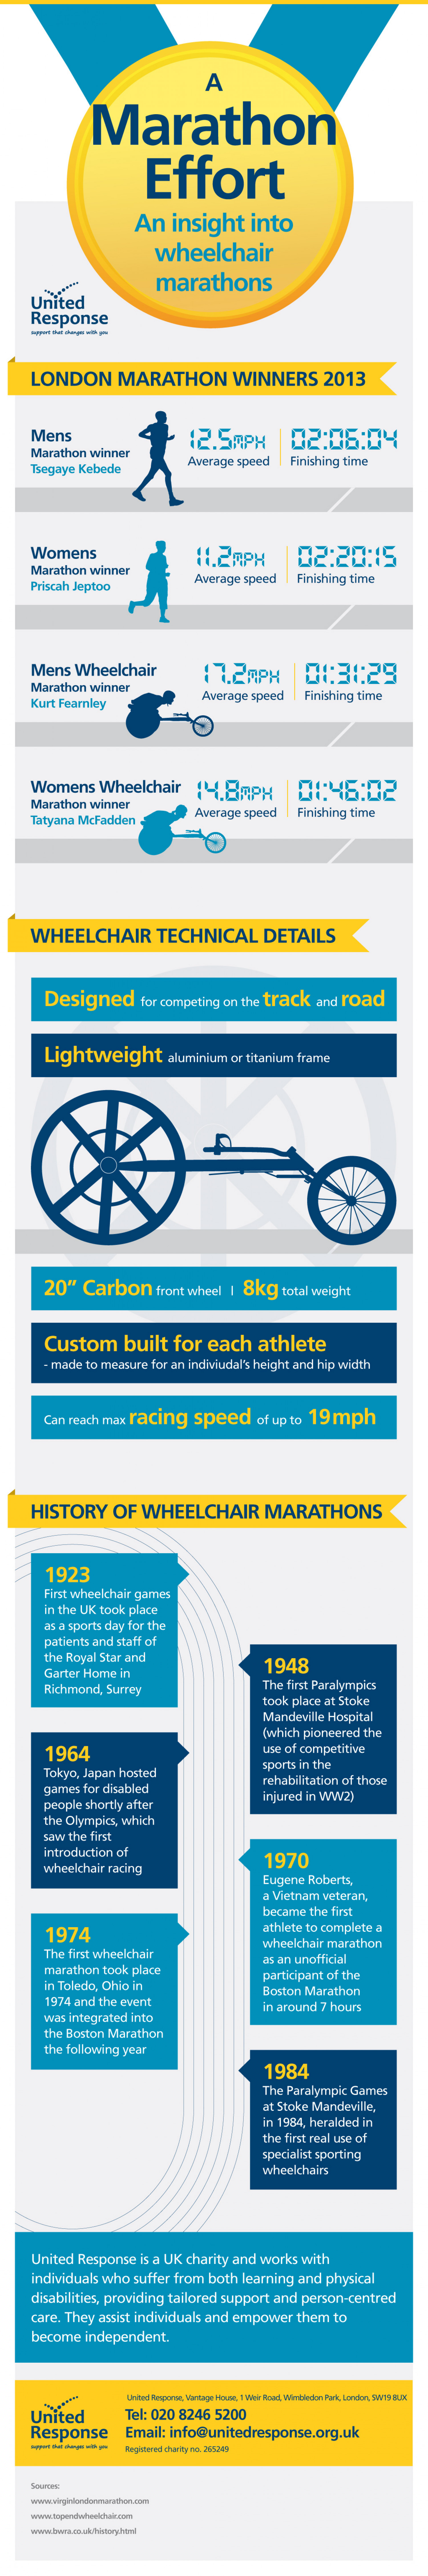 A Marathon Effort: An insight into wheelchair marathons Infographic